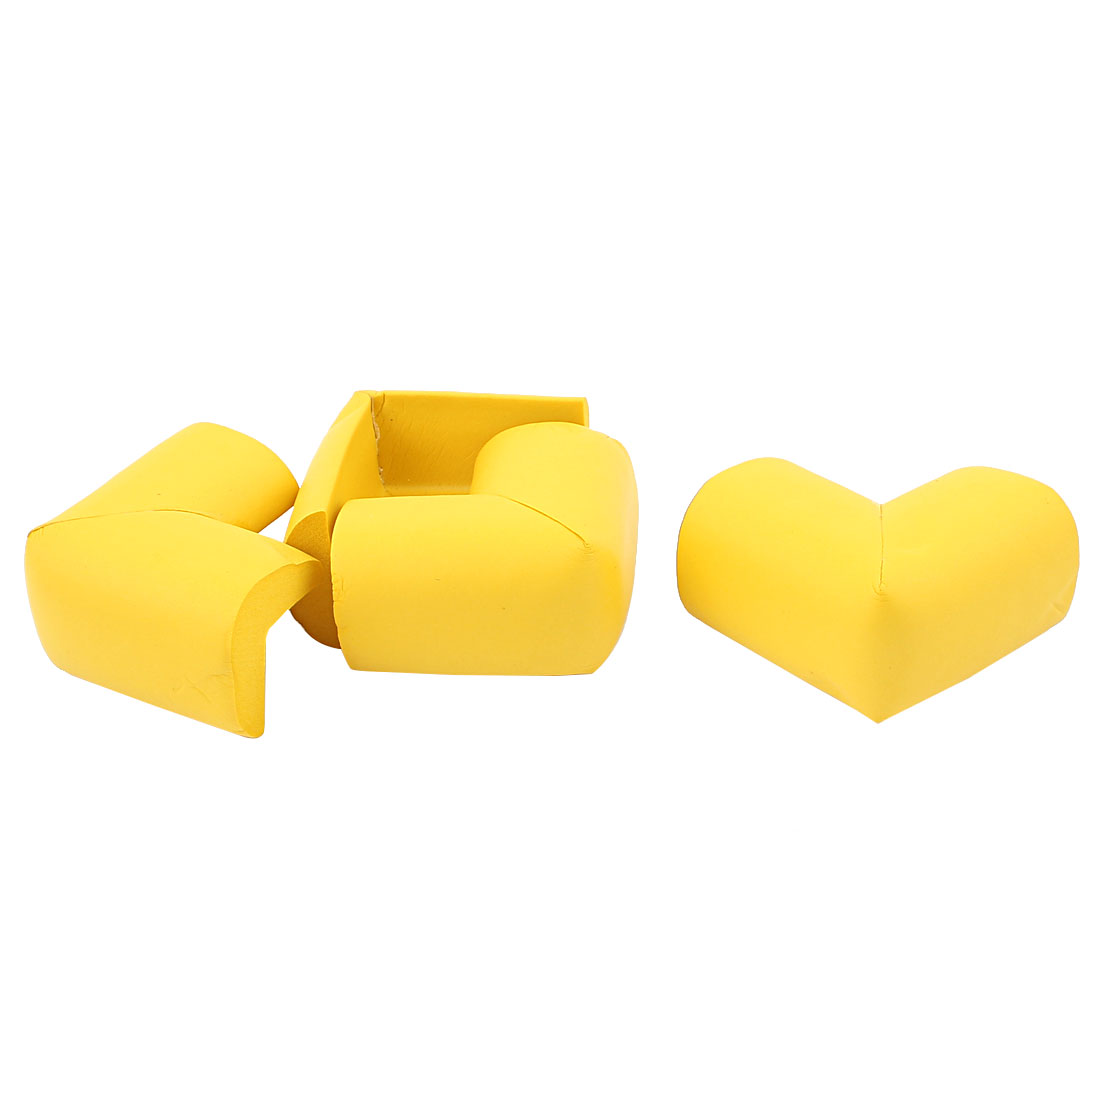 Furniture Table Corner Soft Foam Cushion Protectors Bumpers Yellow 4pcs